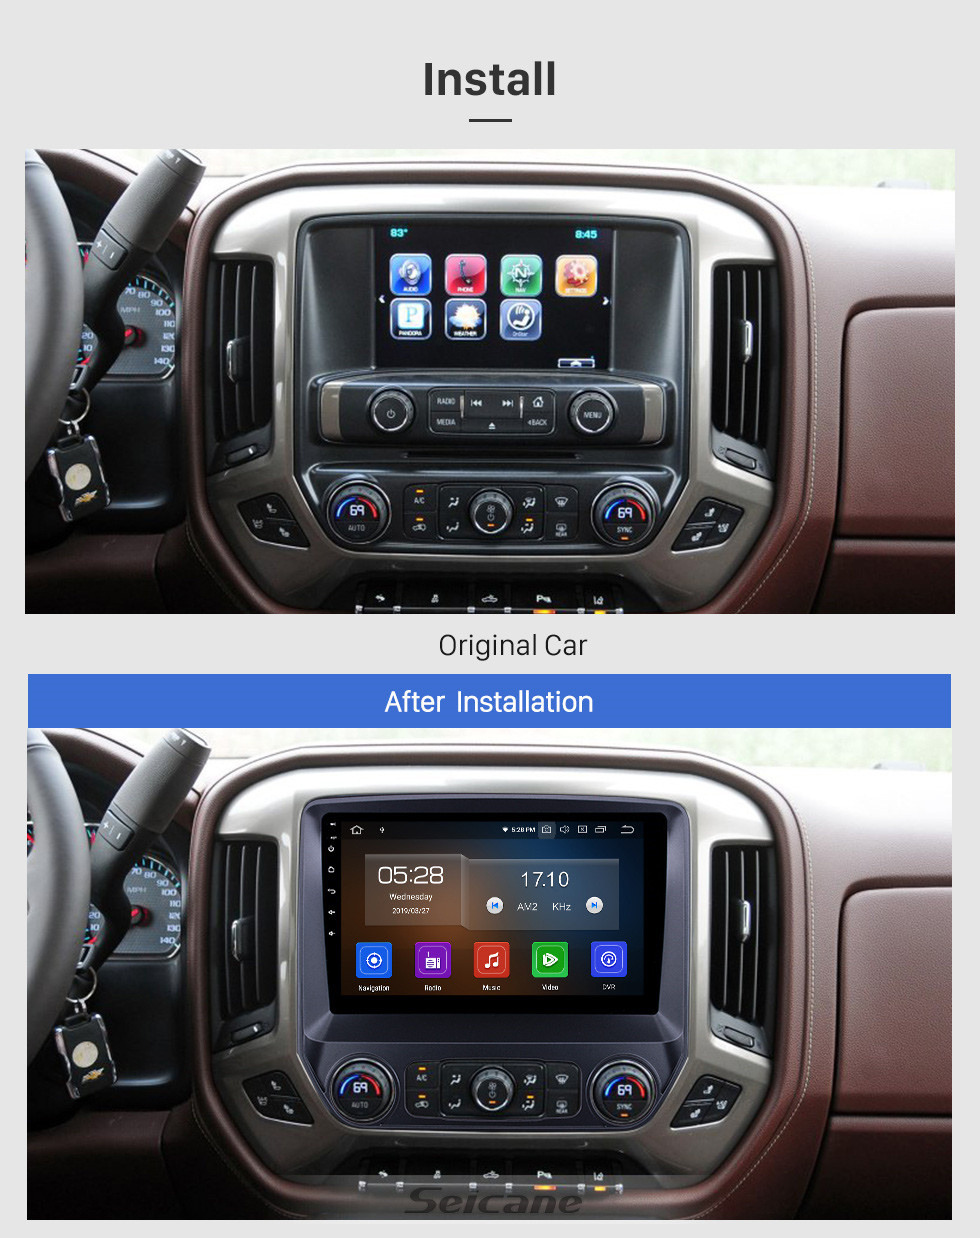 Seicane Android 9.0 10.1 inch 2014-2018 Chevy Chevrolet Colorado Car Radio with GPS Nav HD Touchscreen FM Audio Carplay Bluetooth WIFI support 4G SWC DVD